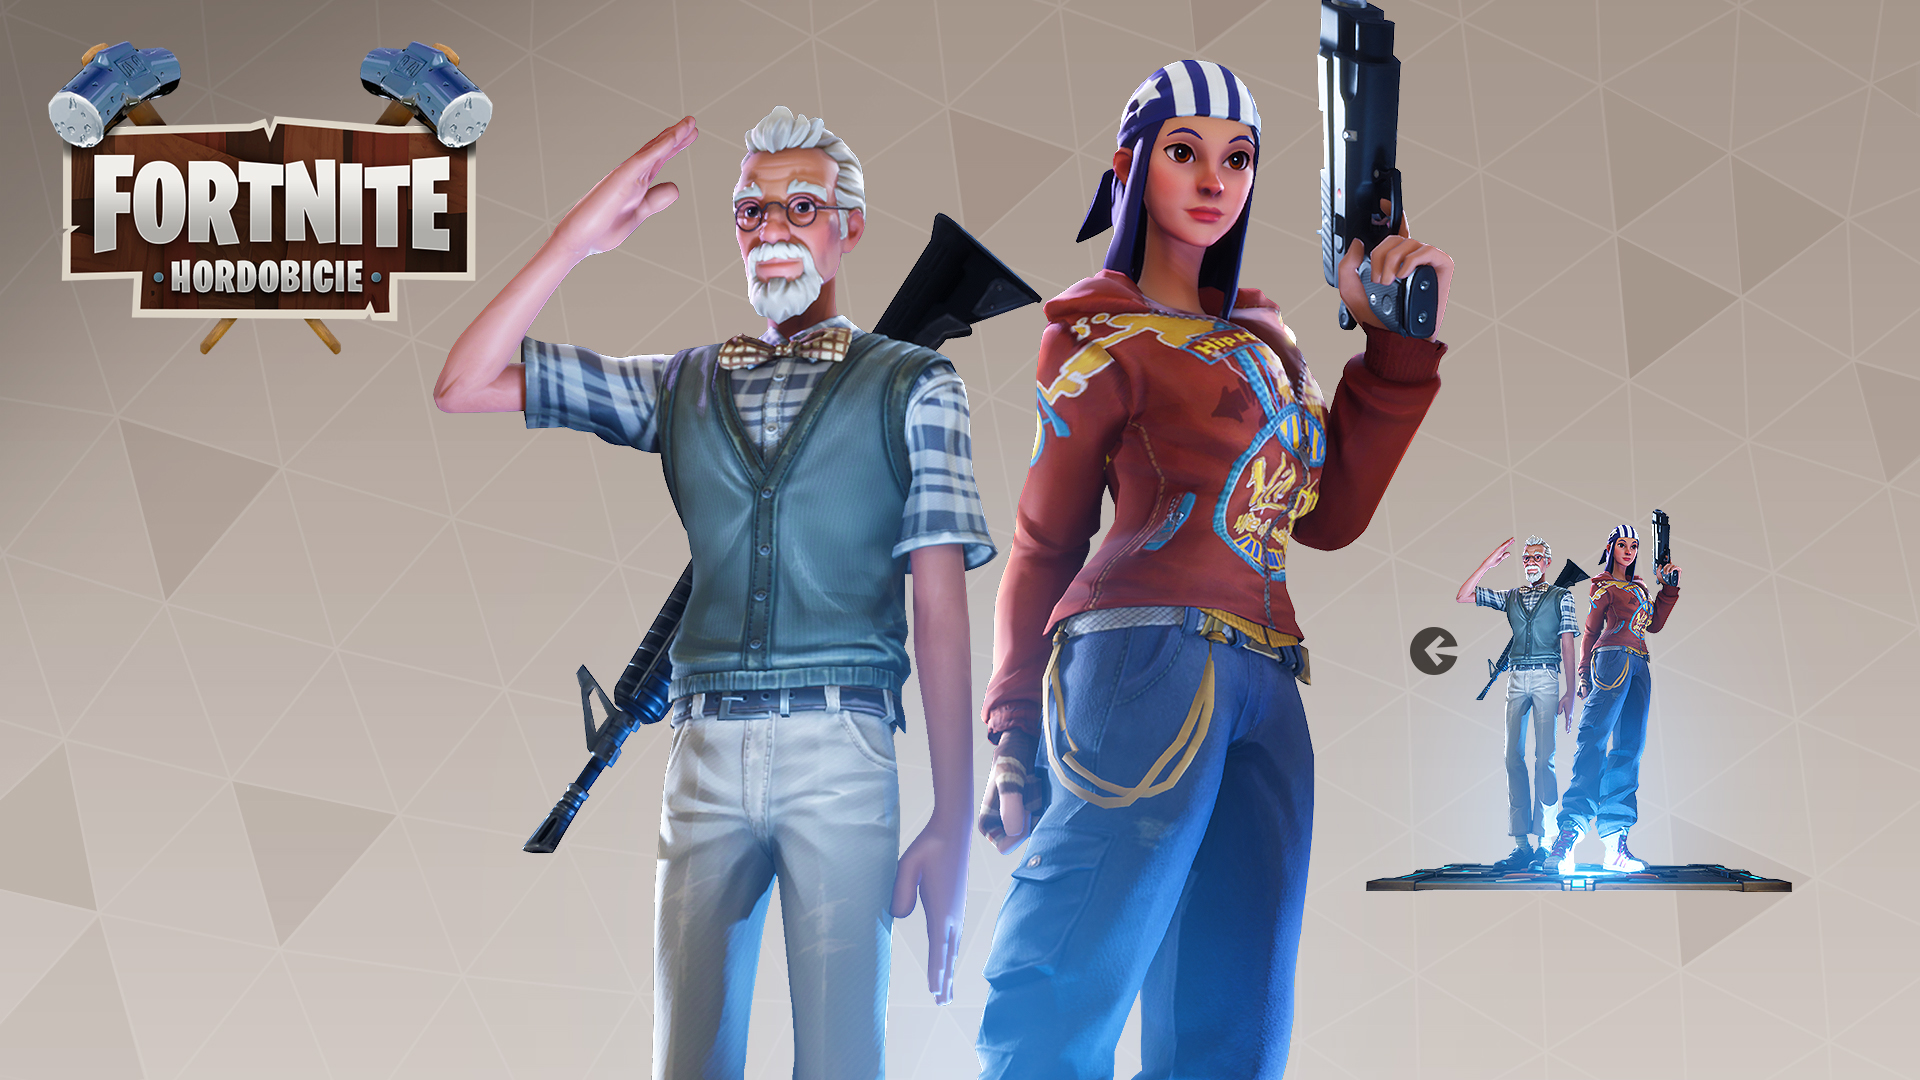 Fortnite%2Fblog%2Fea-1-7-patch-notes%2FPL-HB-Defenders-1920x1080-7bb2c560cd990561edff9d2cfd6240e09d6cad75